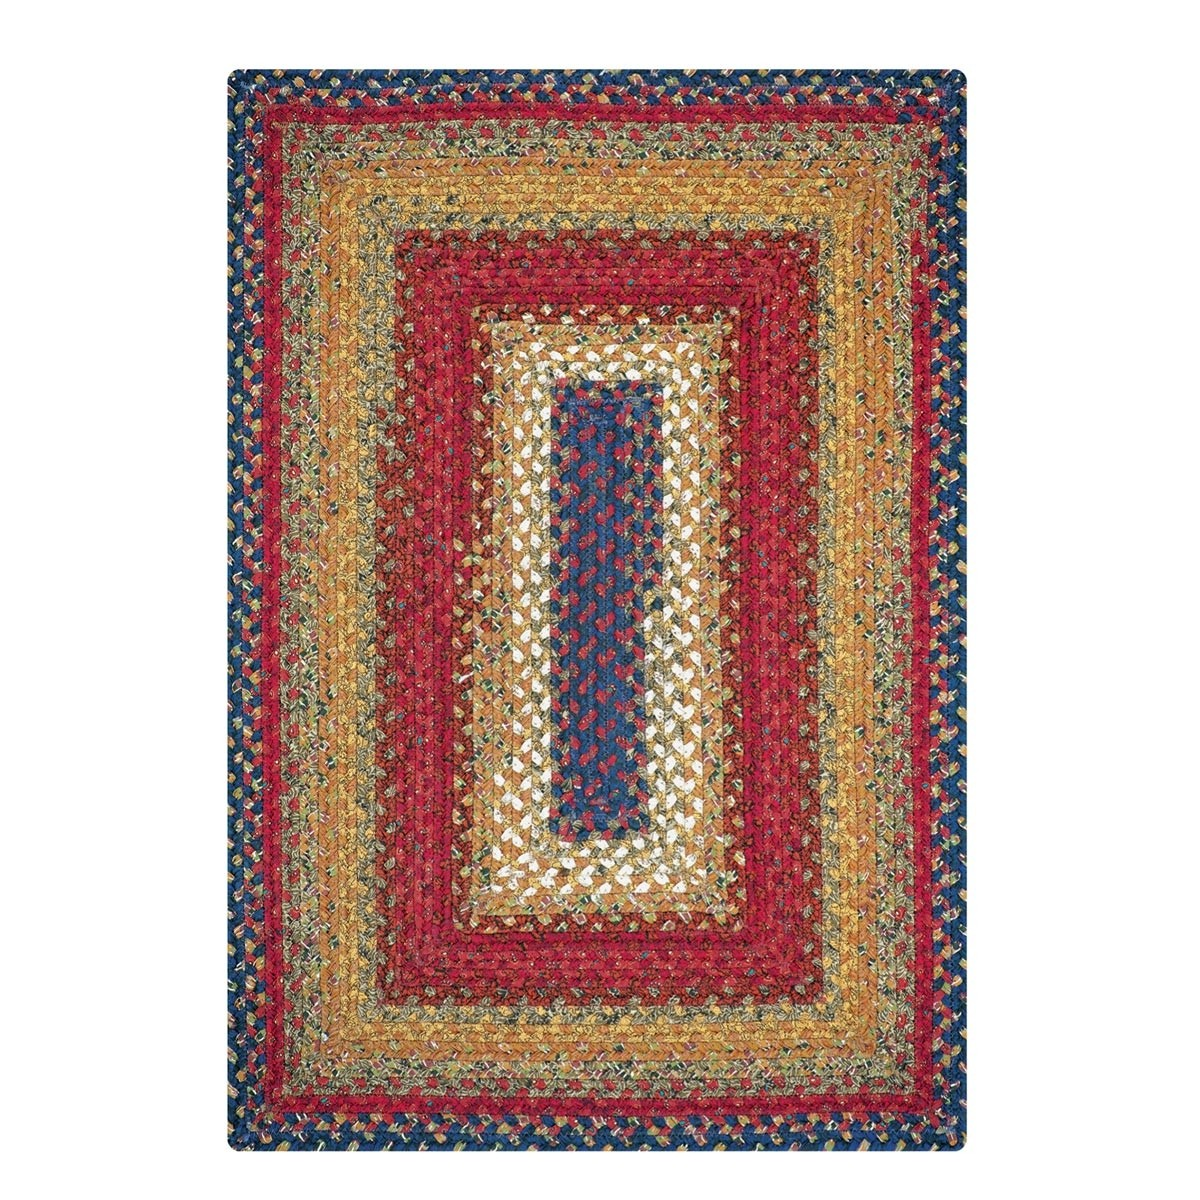 Braided Rug For Living Room: Log Cabin Step Cotton Braided Rugs